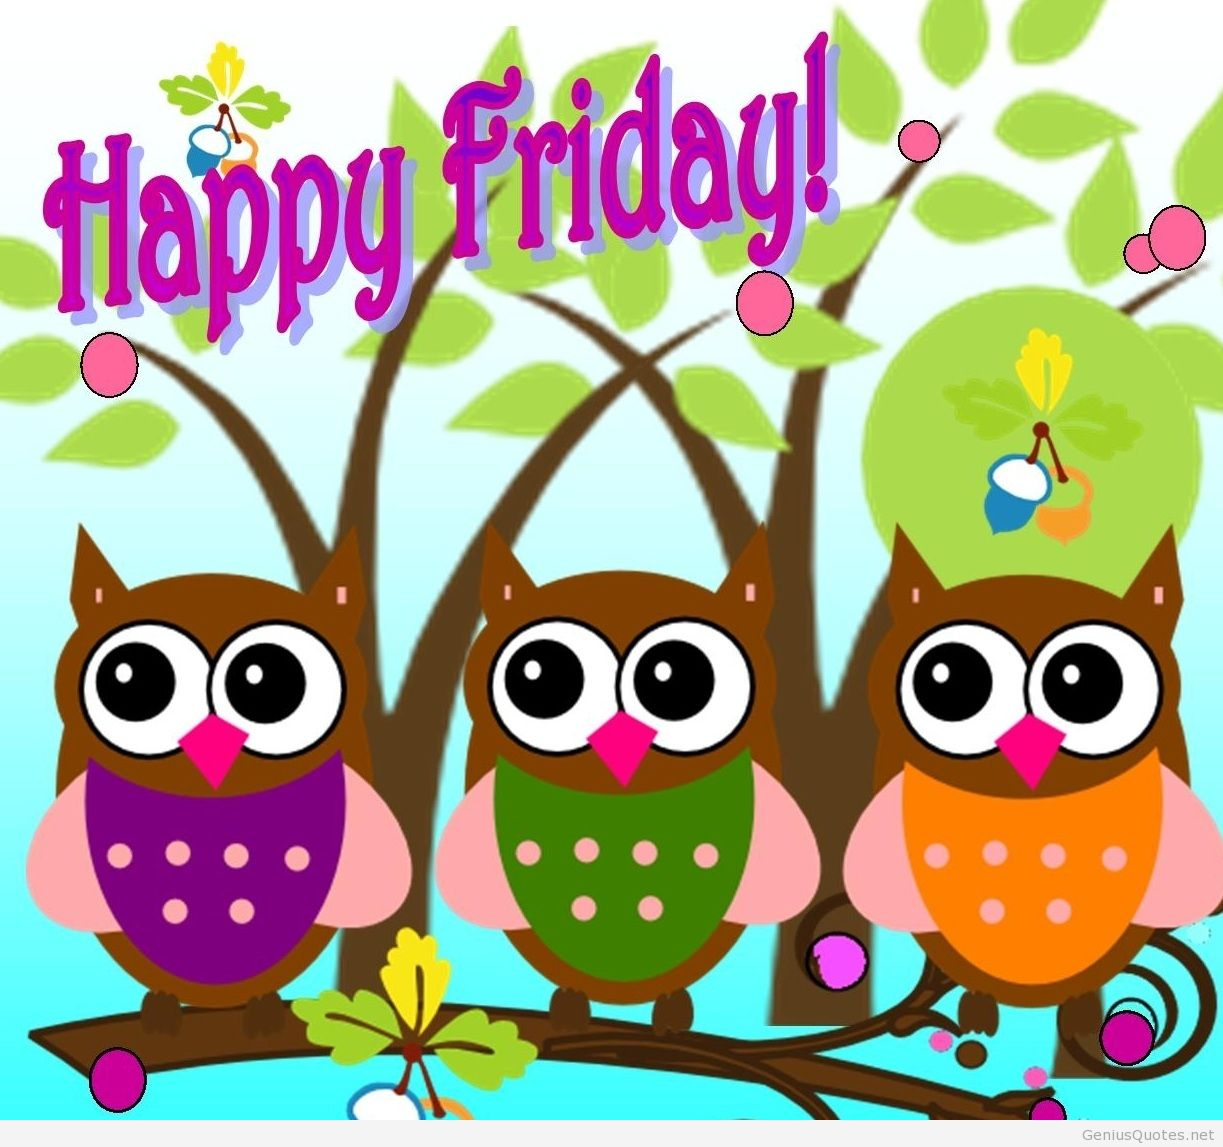 Happy Friday Quotes Funny Happy Friday Clipart Cartoon 20140904120643